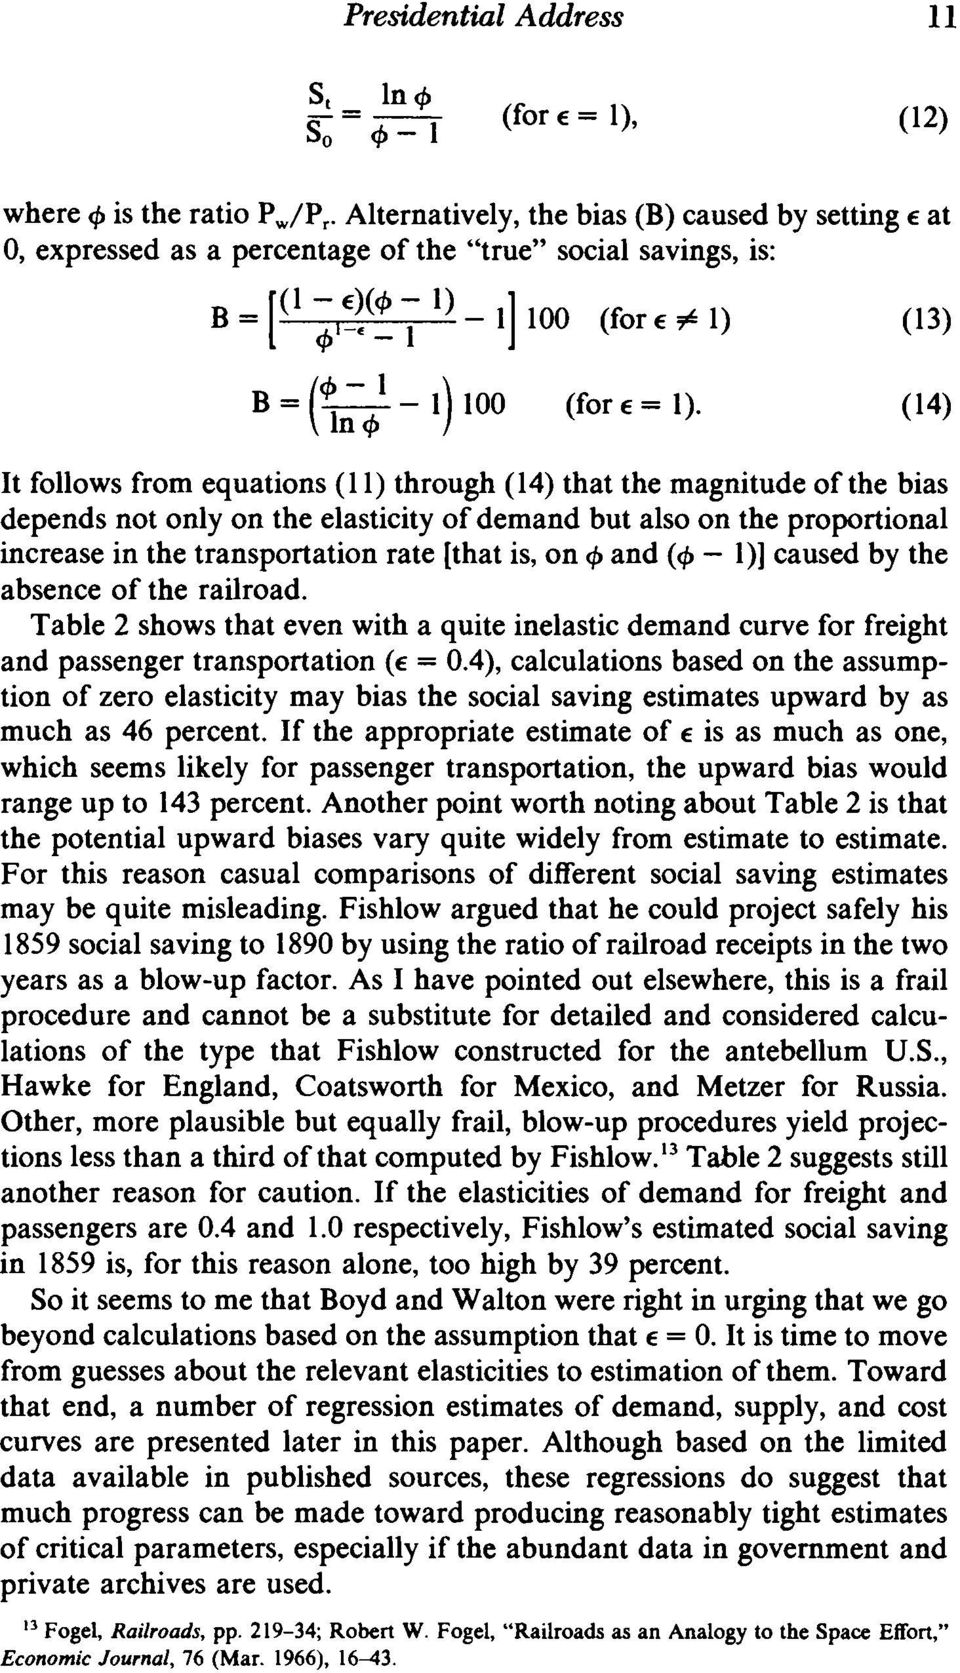 (11) through (14) that the magnitude of the bias depends not only on the elasticity of demand but also on the proportional increase in the transportation rate [that is, on 4 and (4-1)] caused by the